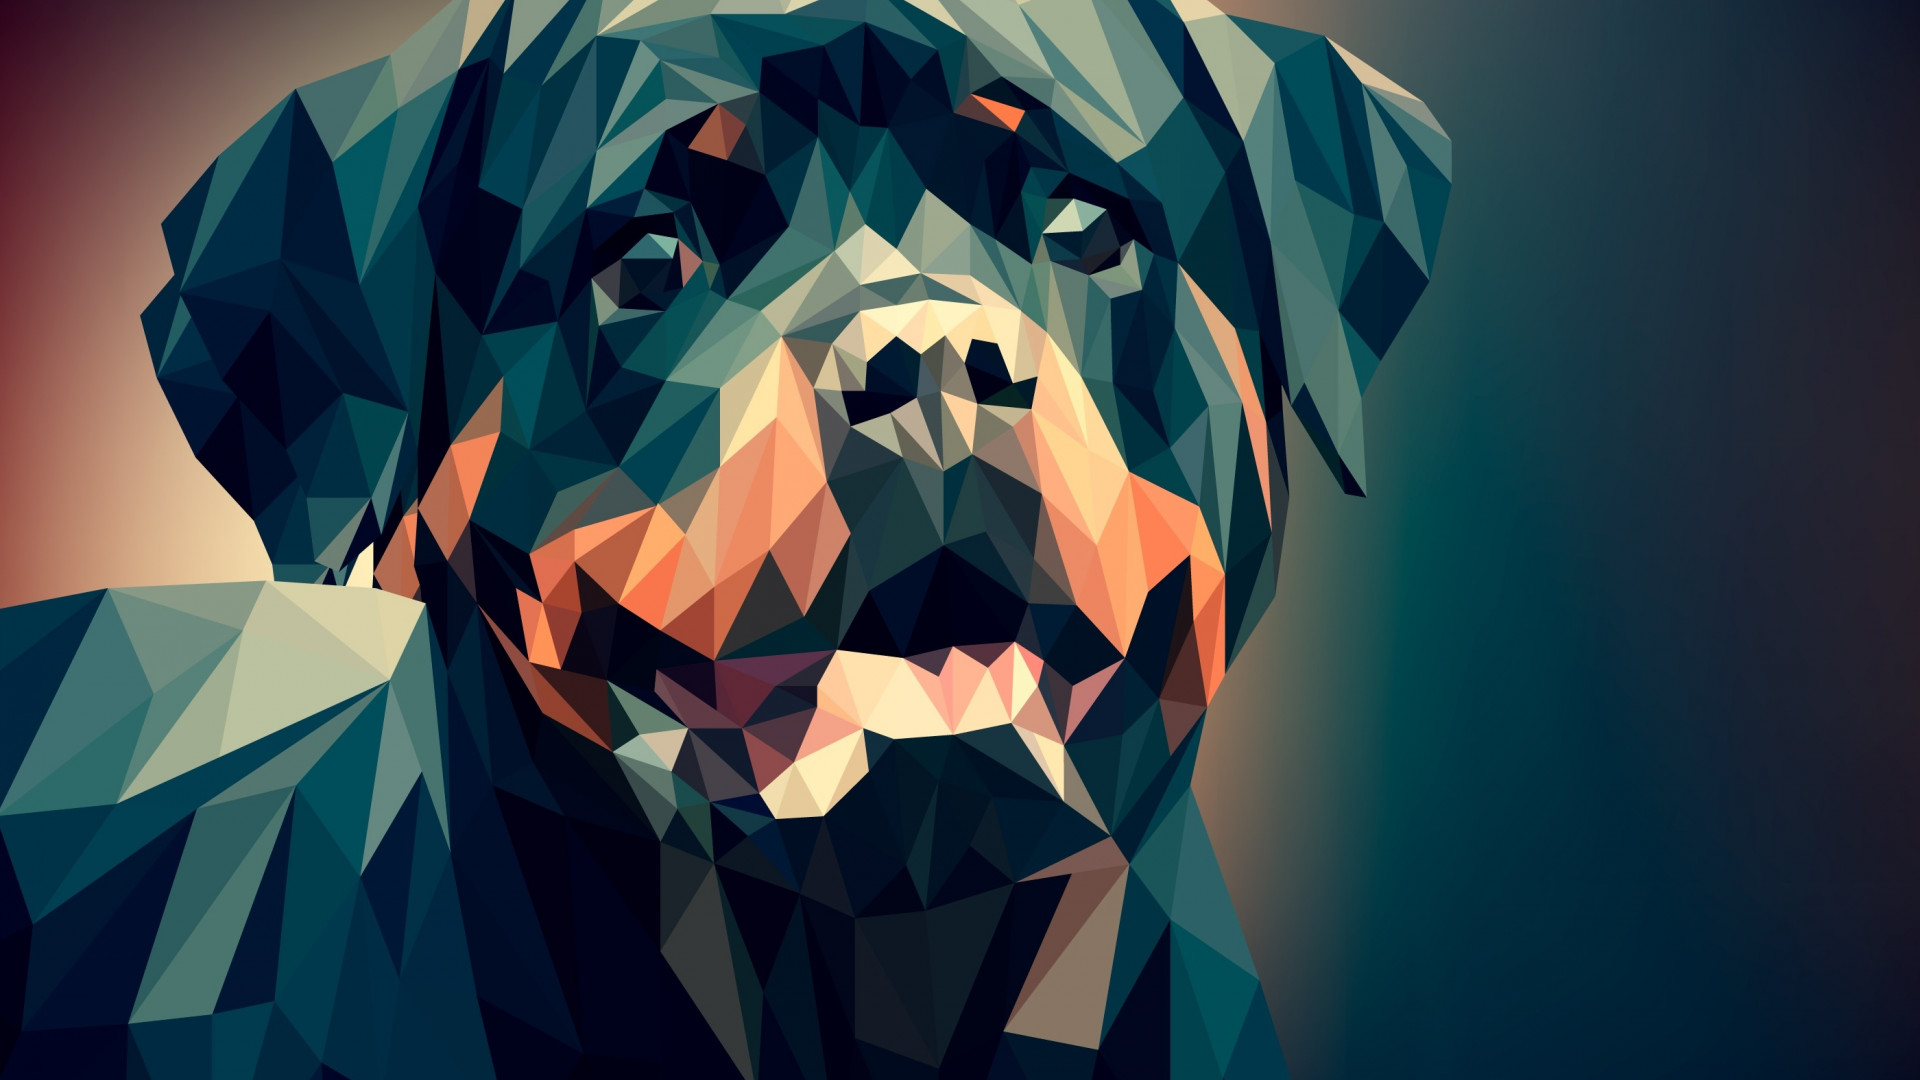 Low Poly Illustration: Rottweiler wallpaper 1920x1080